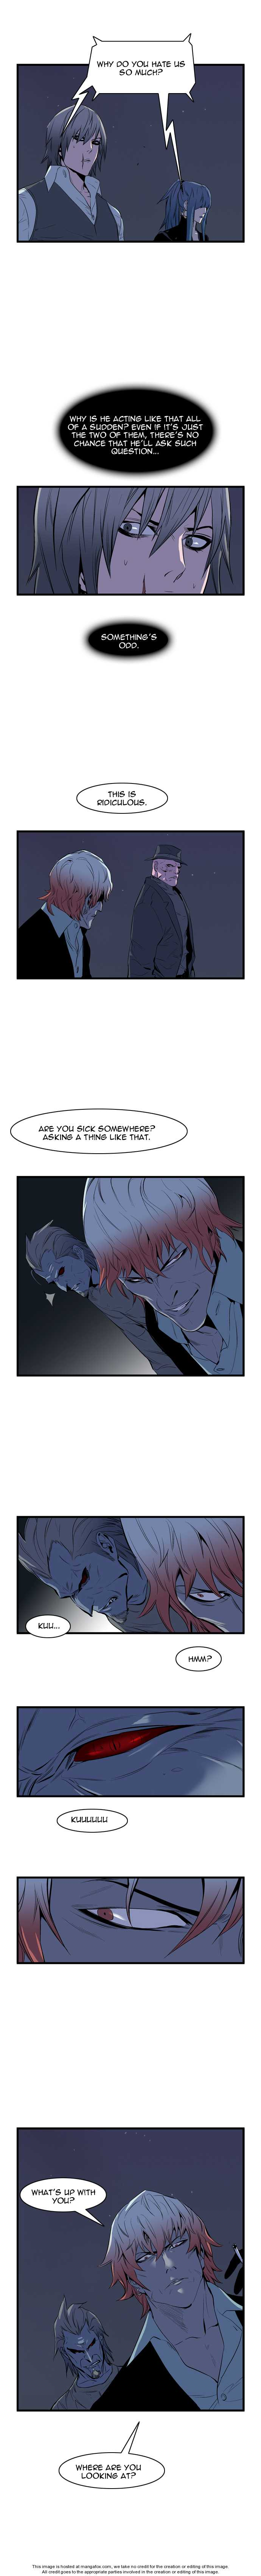 Noblesse 65 Page 4